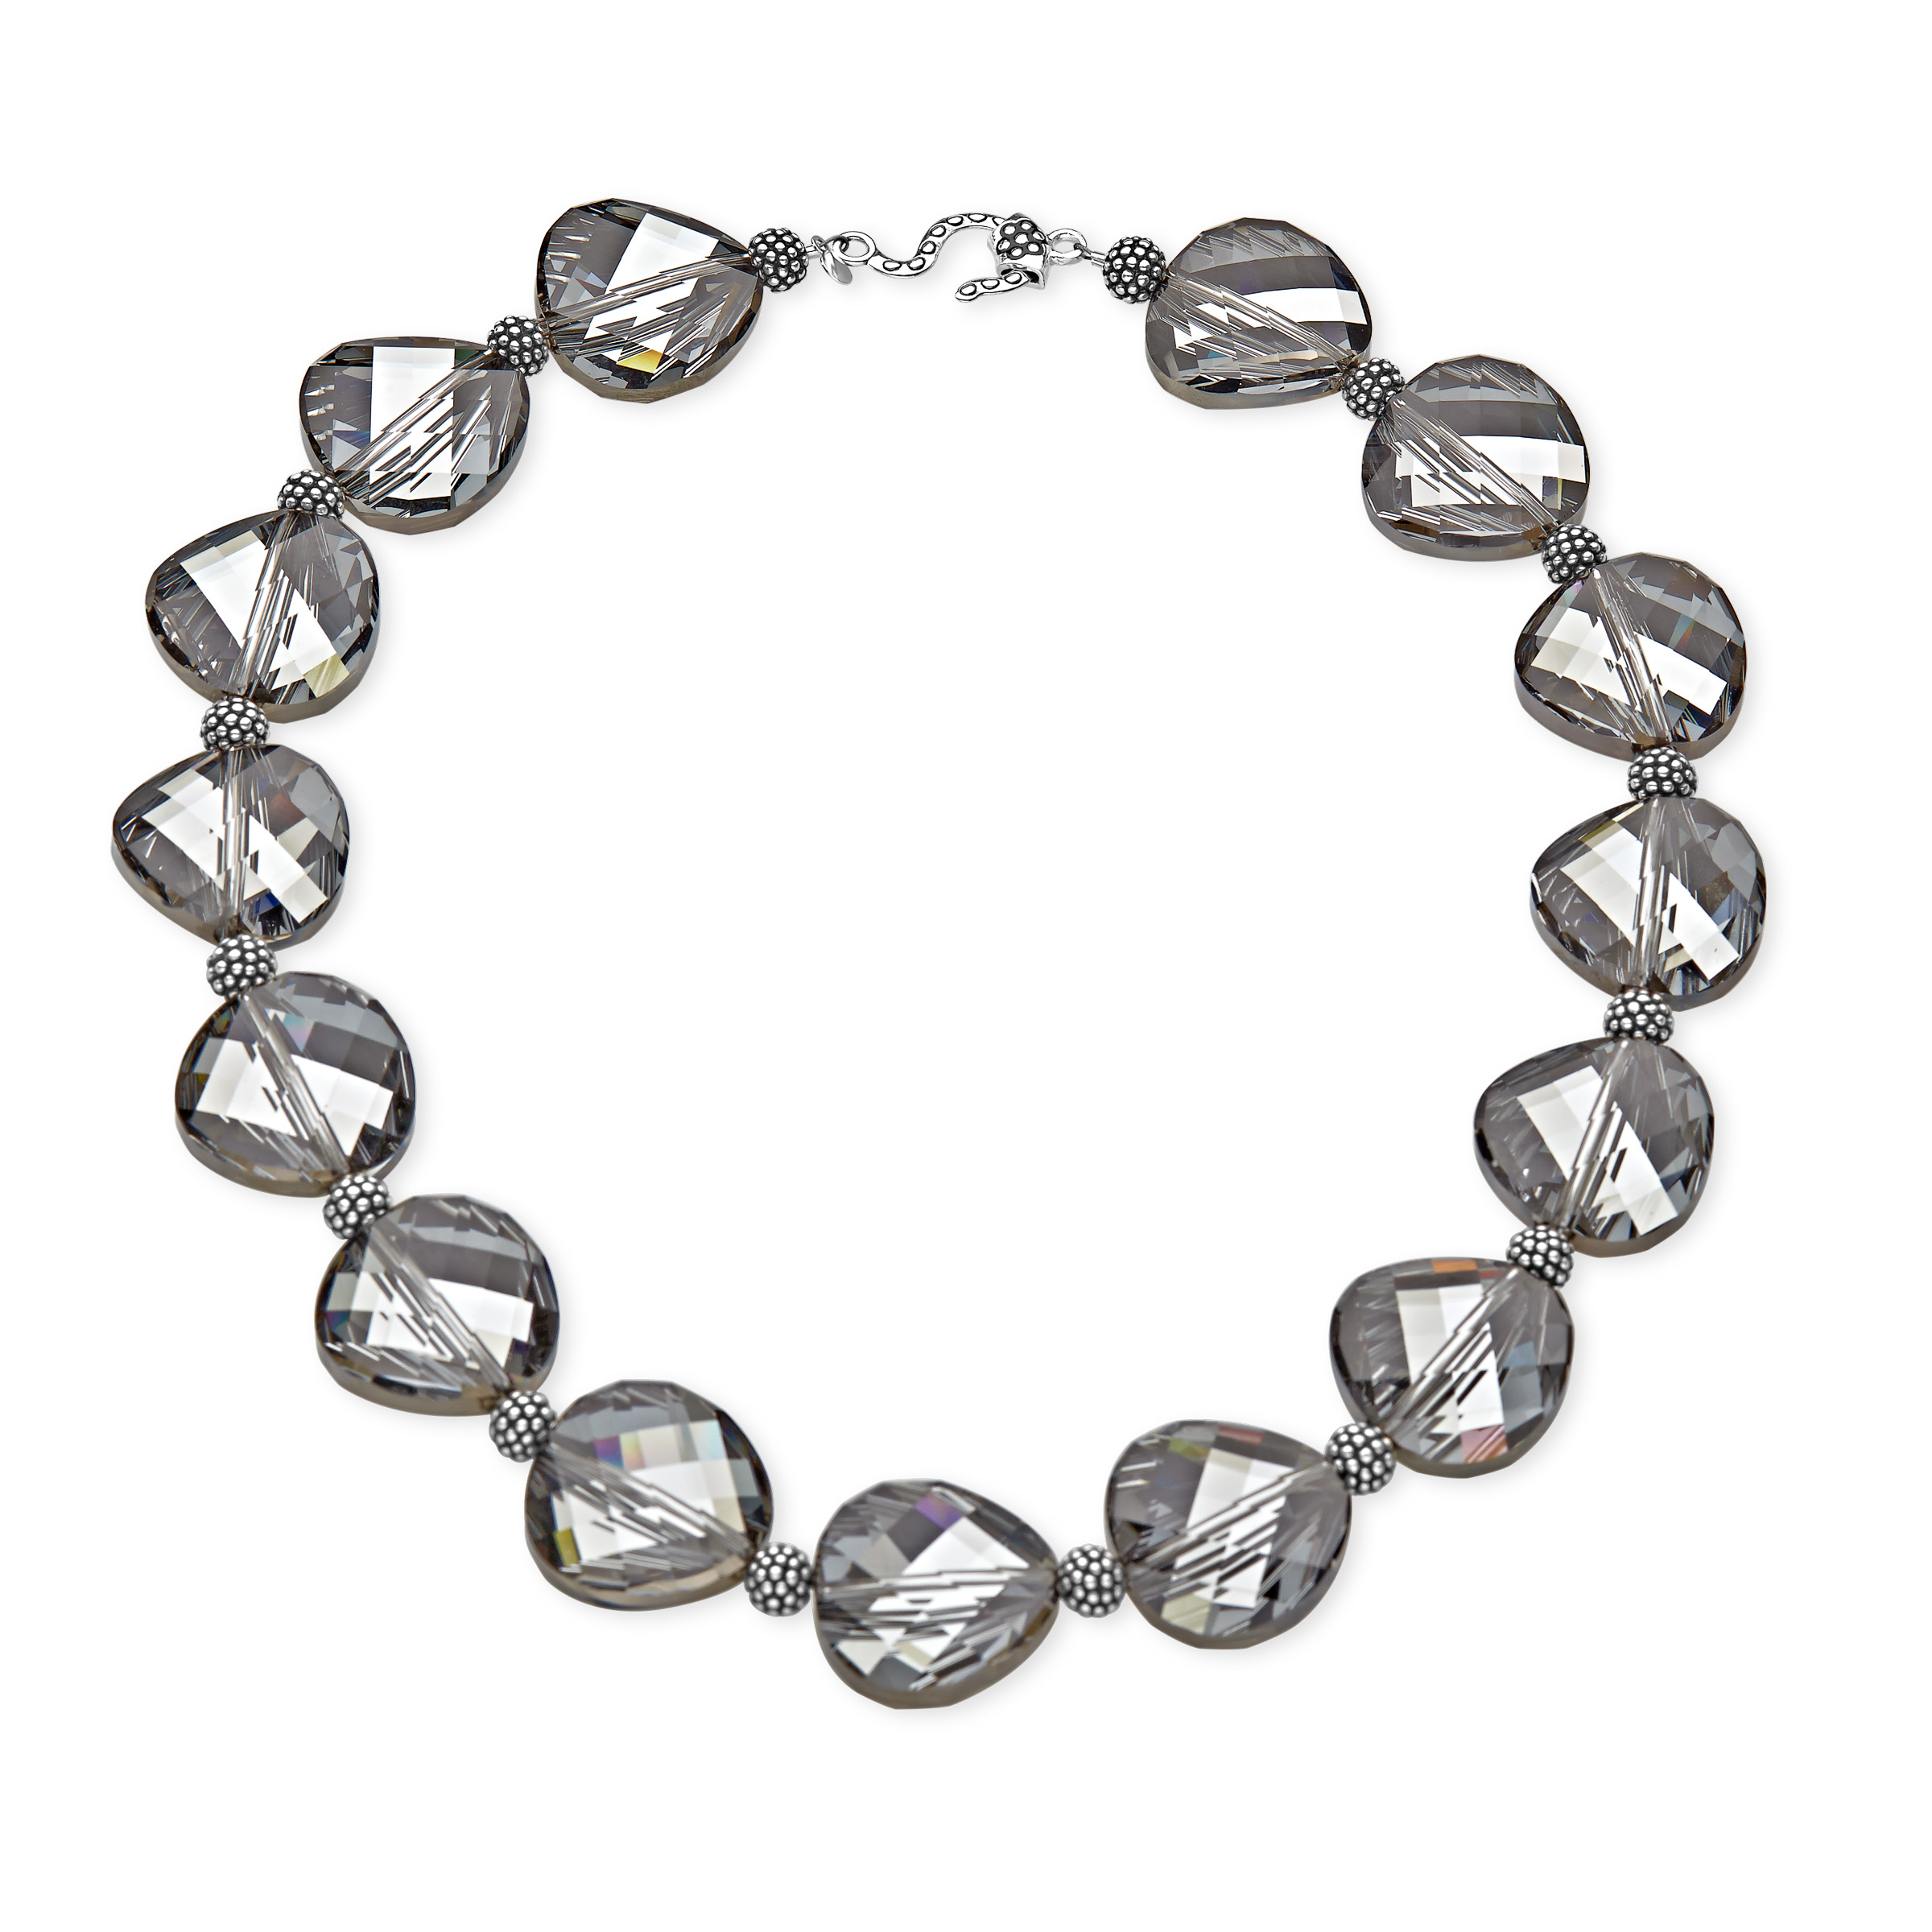 Aya Azrielant Swarovski Crystals Bead Necklace in Sterling Silver